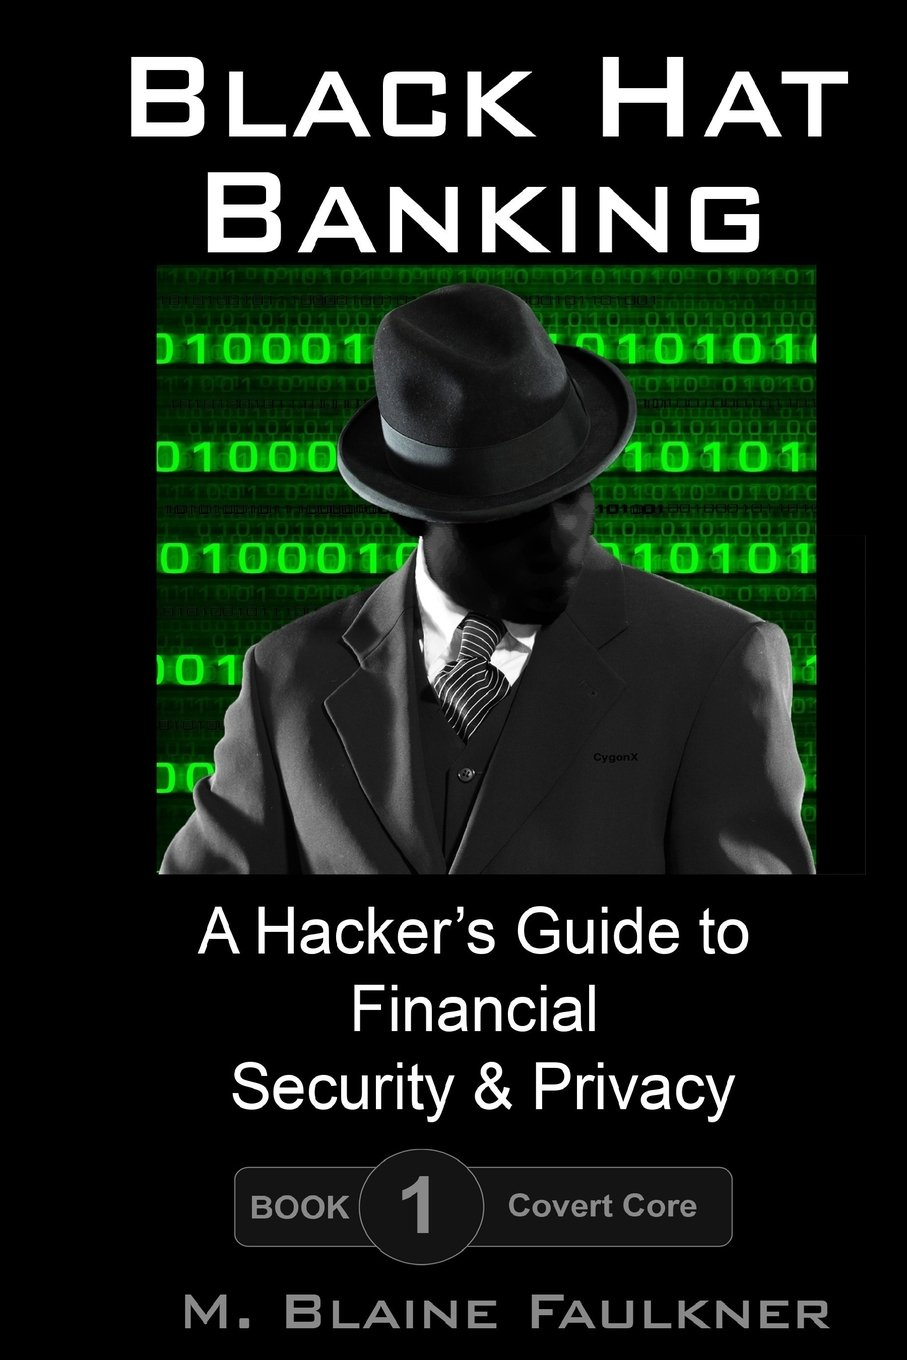 Black Hat Banking: A Hacker's Guide to Financial Security